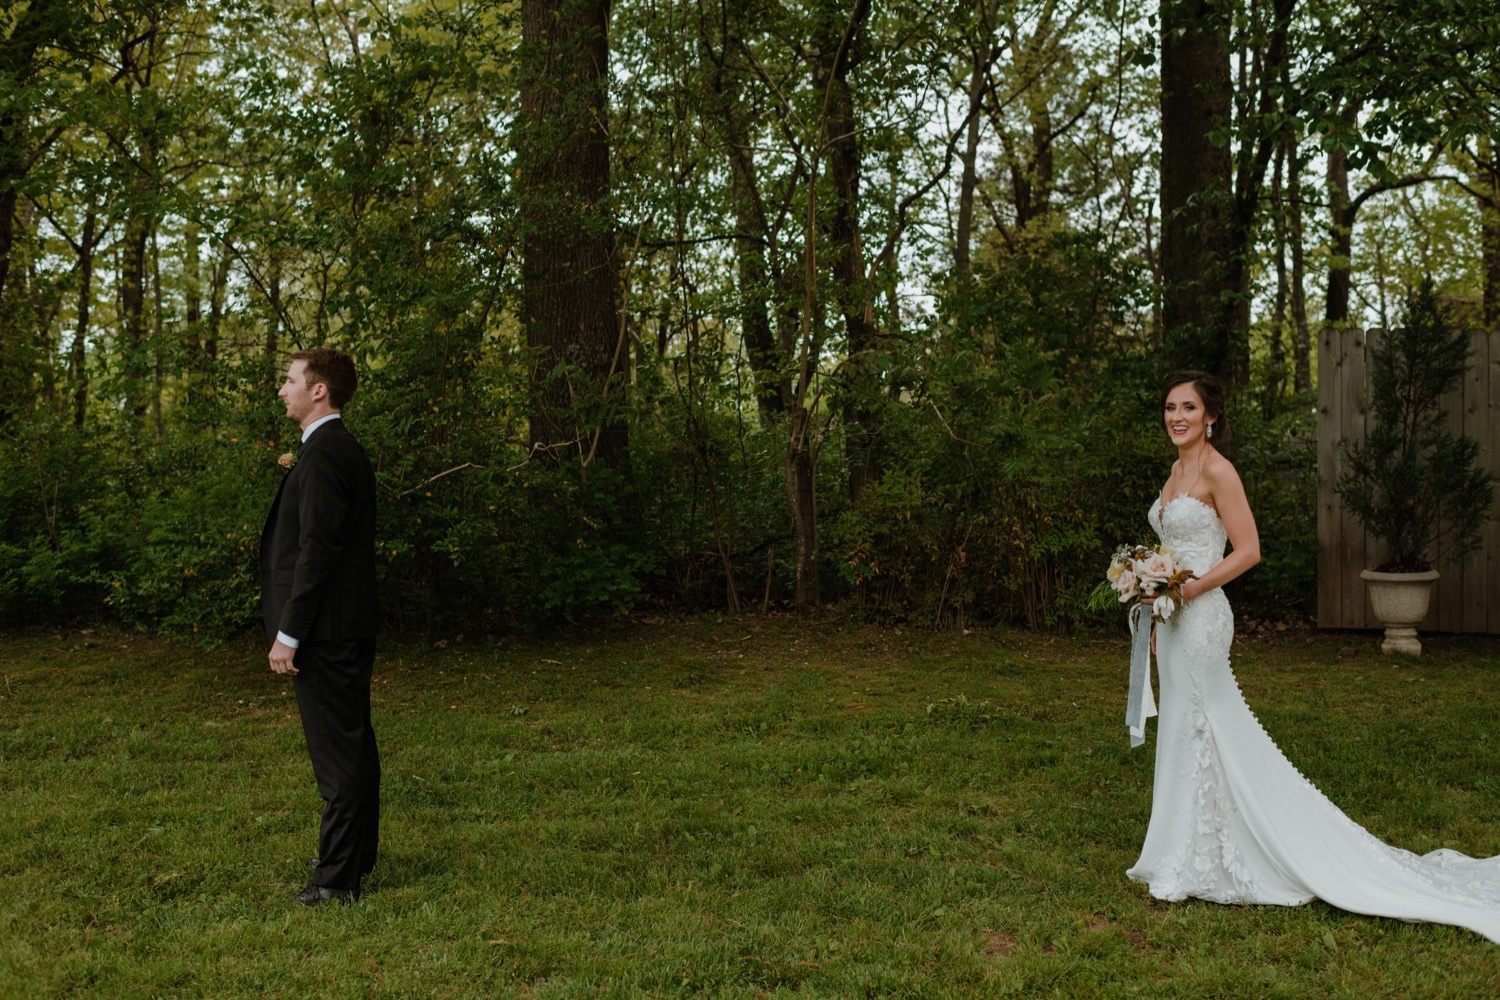 20_JacobandAliWeddingMattLaneFarmFreckledFoxPhotography-248.jpg